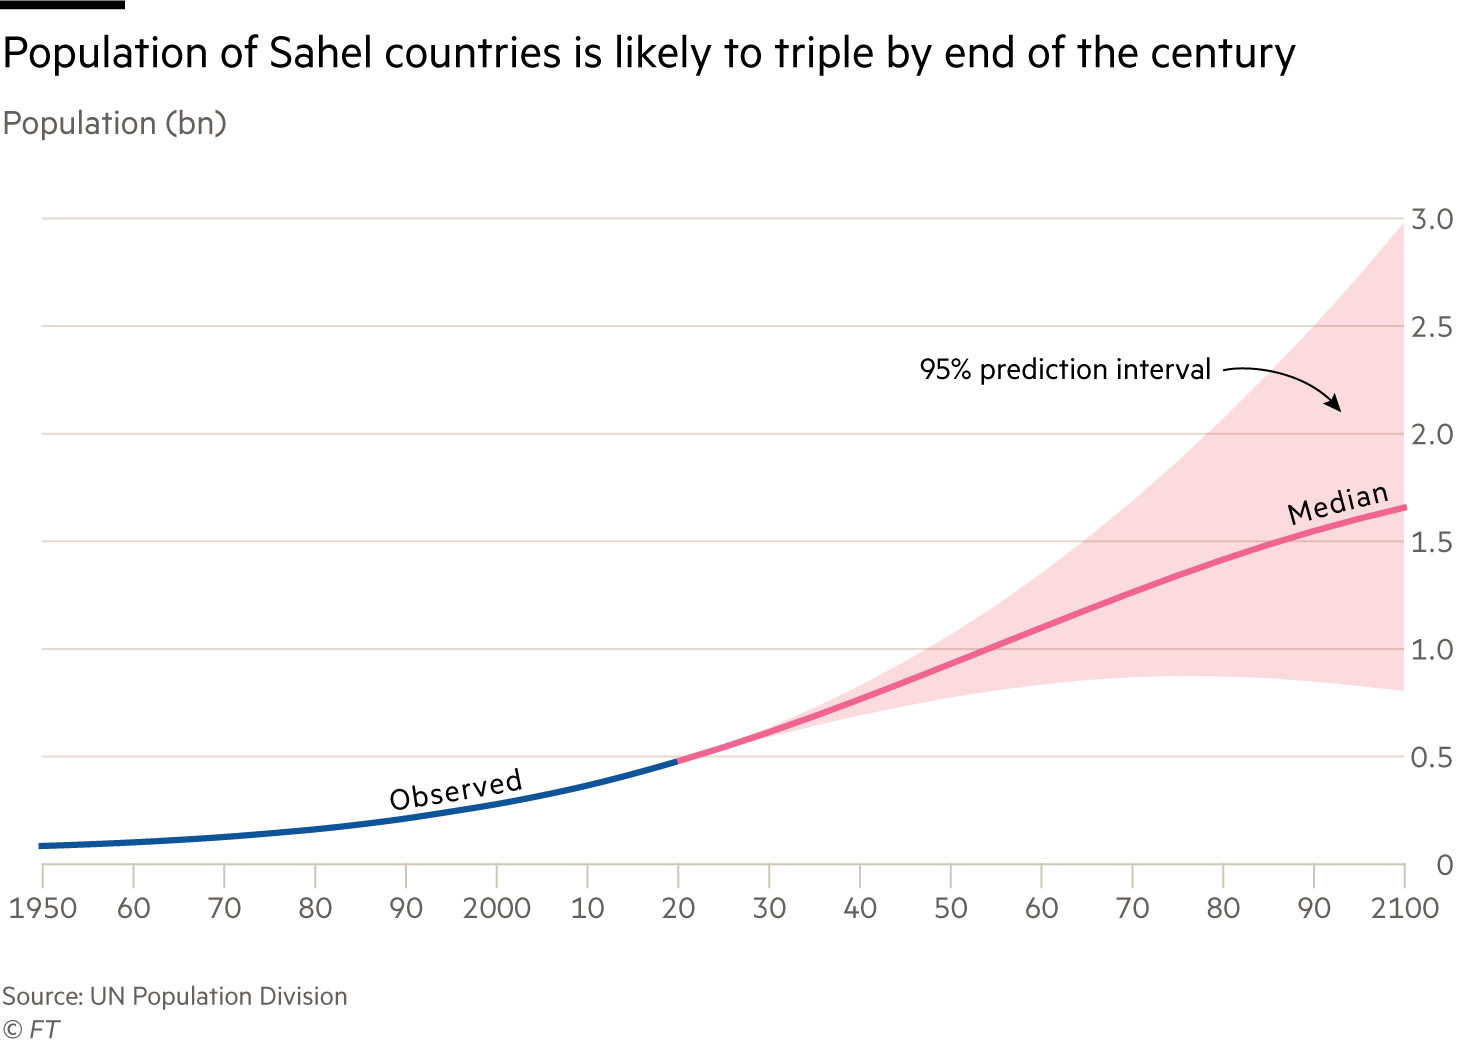 Chart showing population of Sahel countries is likely to triple by the end of the century. Rising from 500 million in 2020 to more than 1.5 billion by 2100